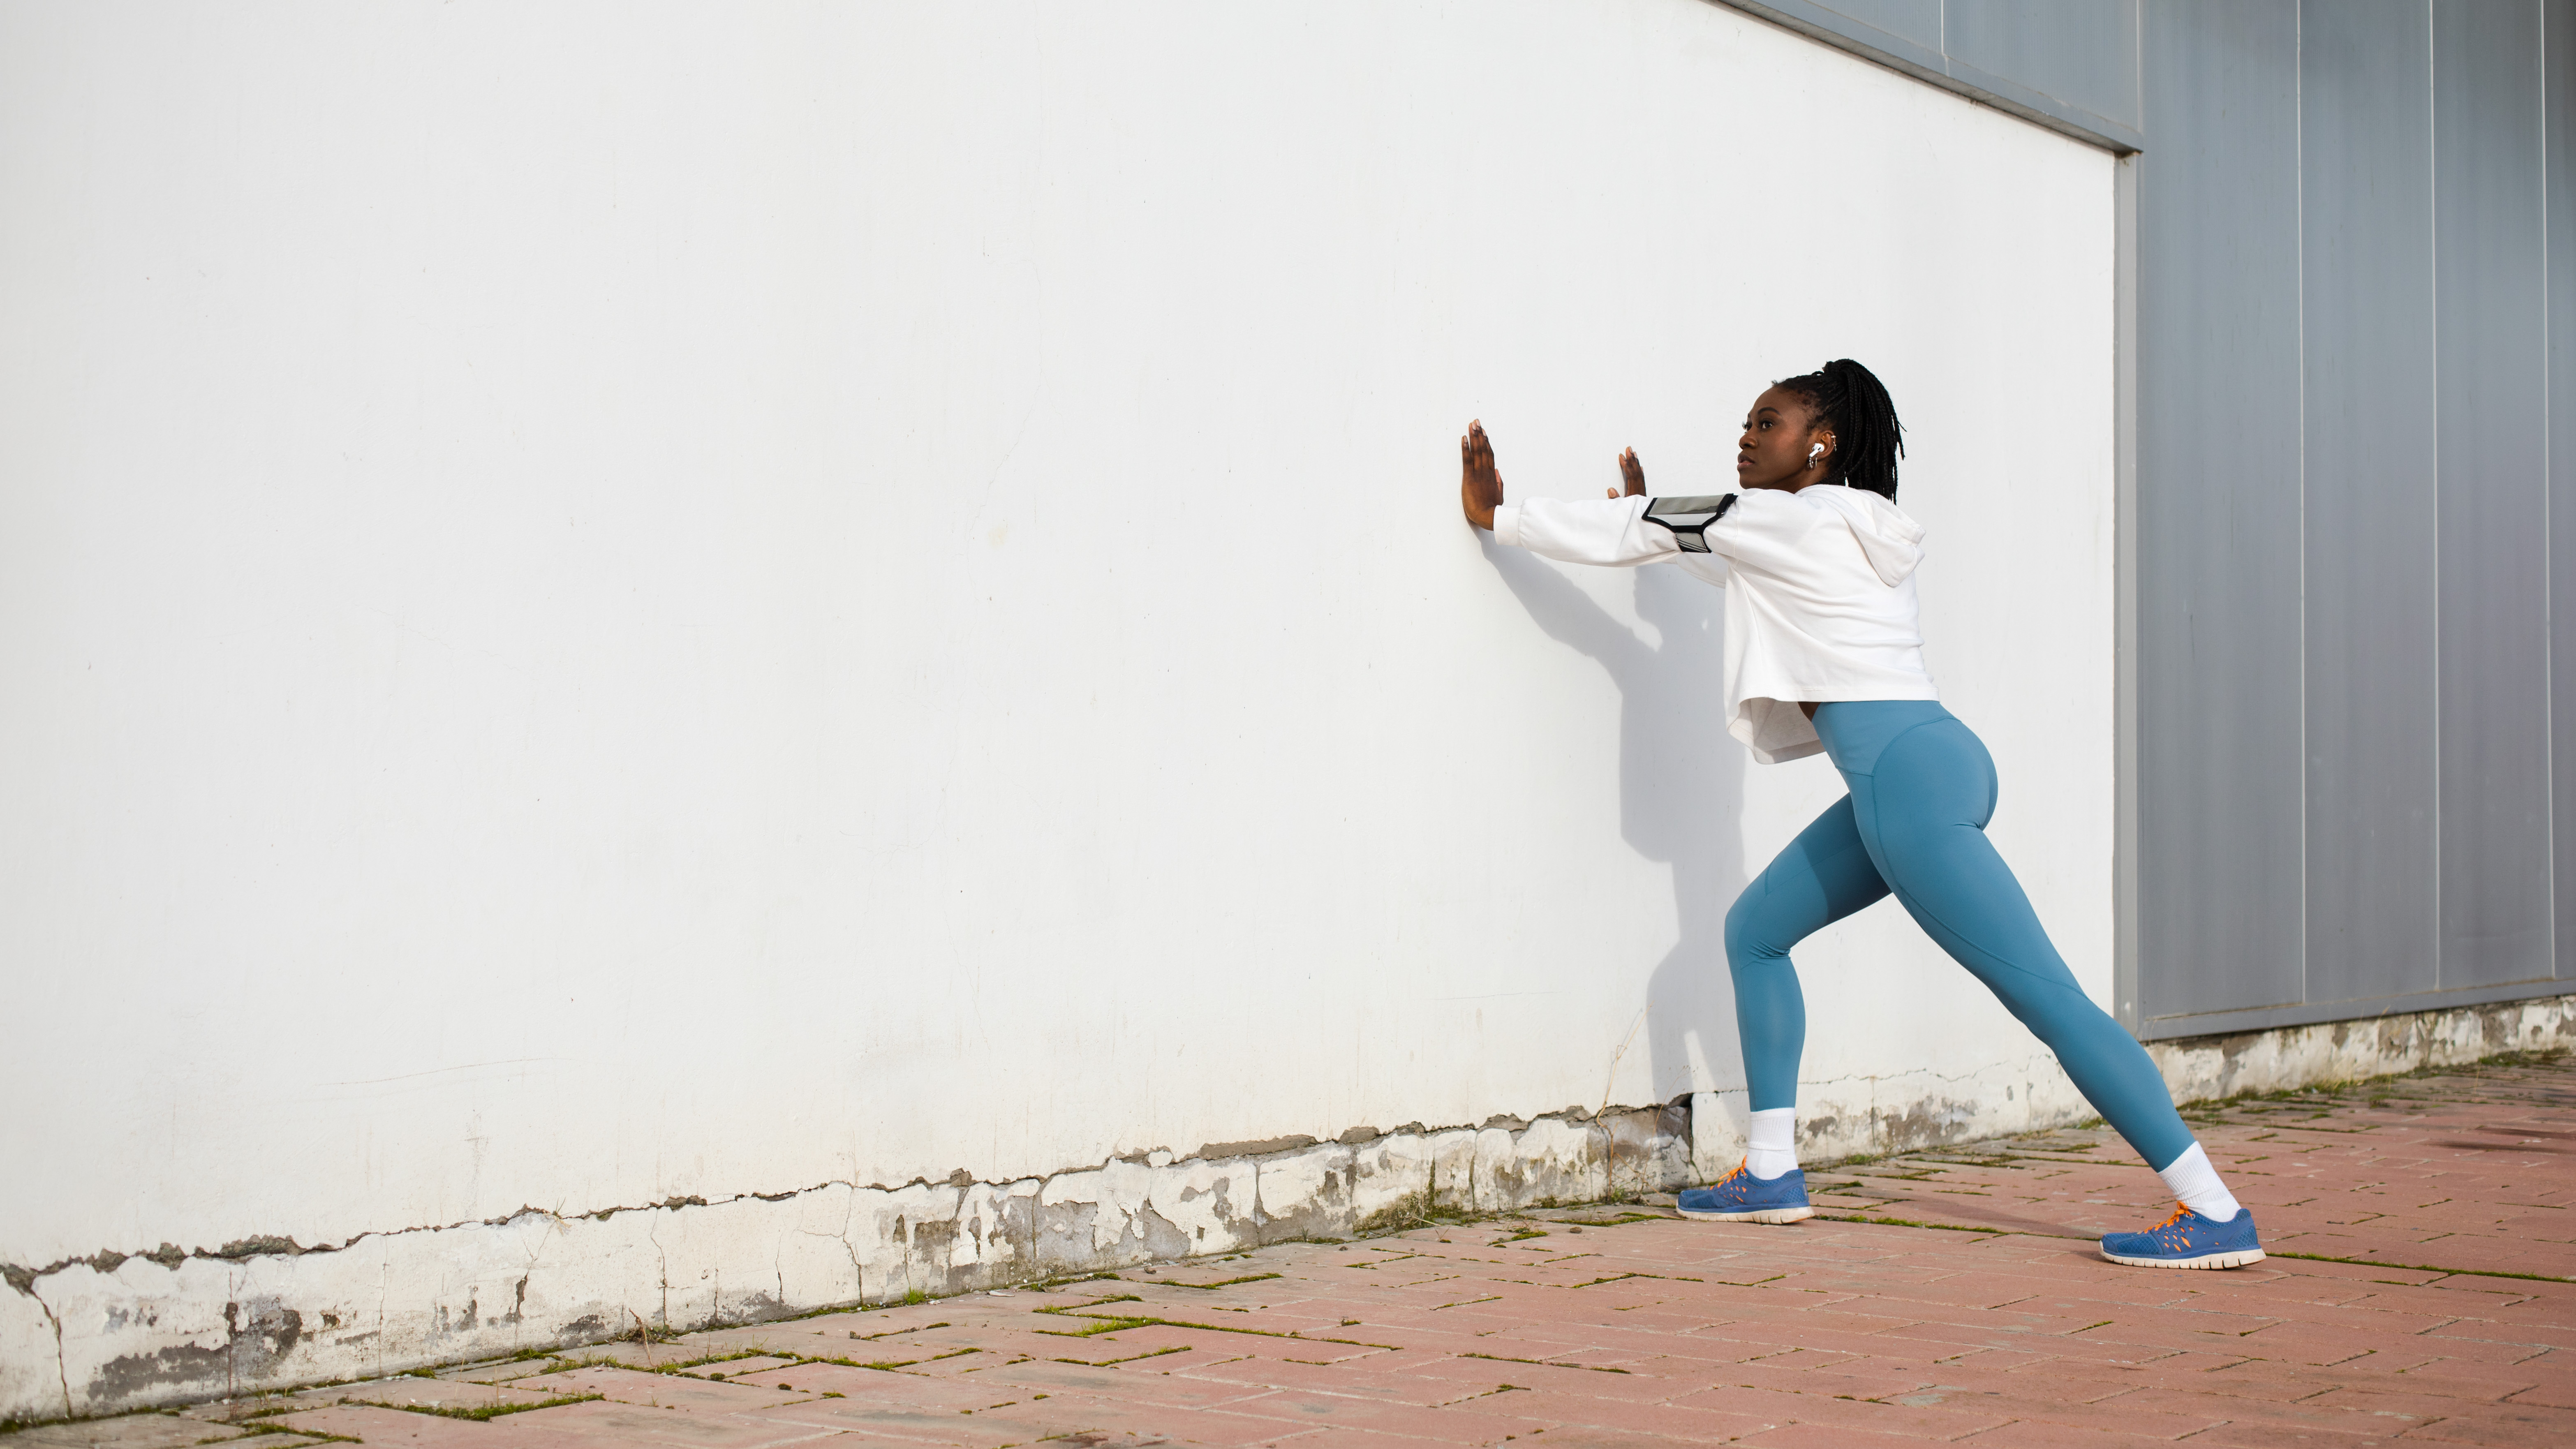 Photograph of female athlete training outside; stretching her calf muscles before a run.